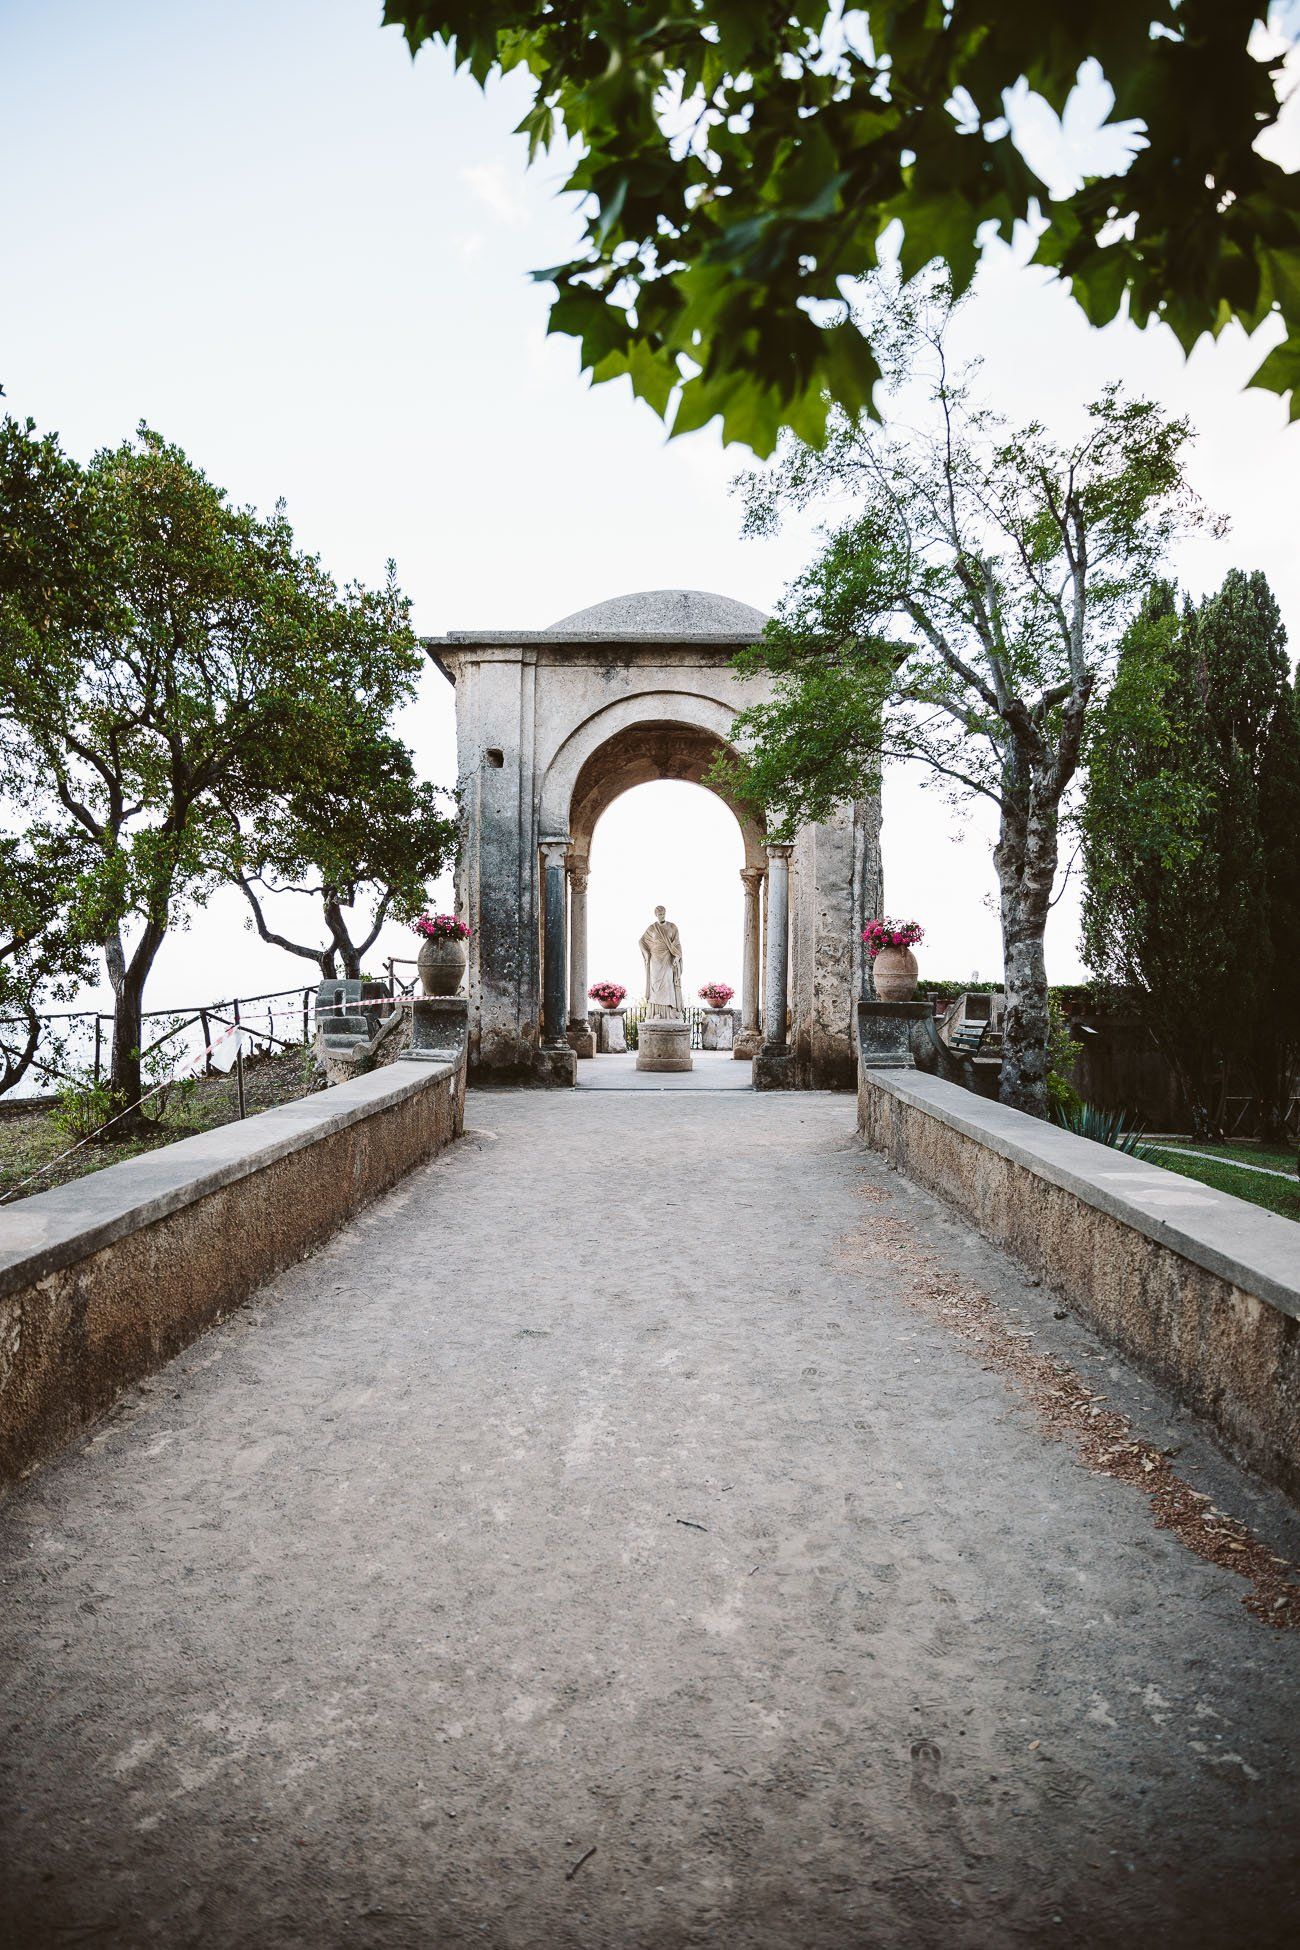 Terrazza dell'infinito at Villa Cimbrone, Ravello